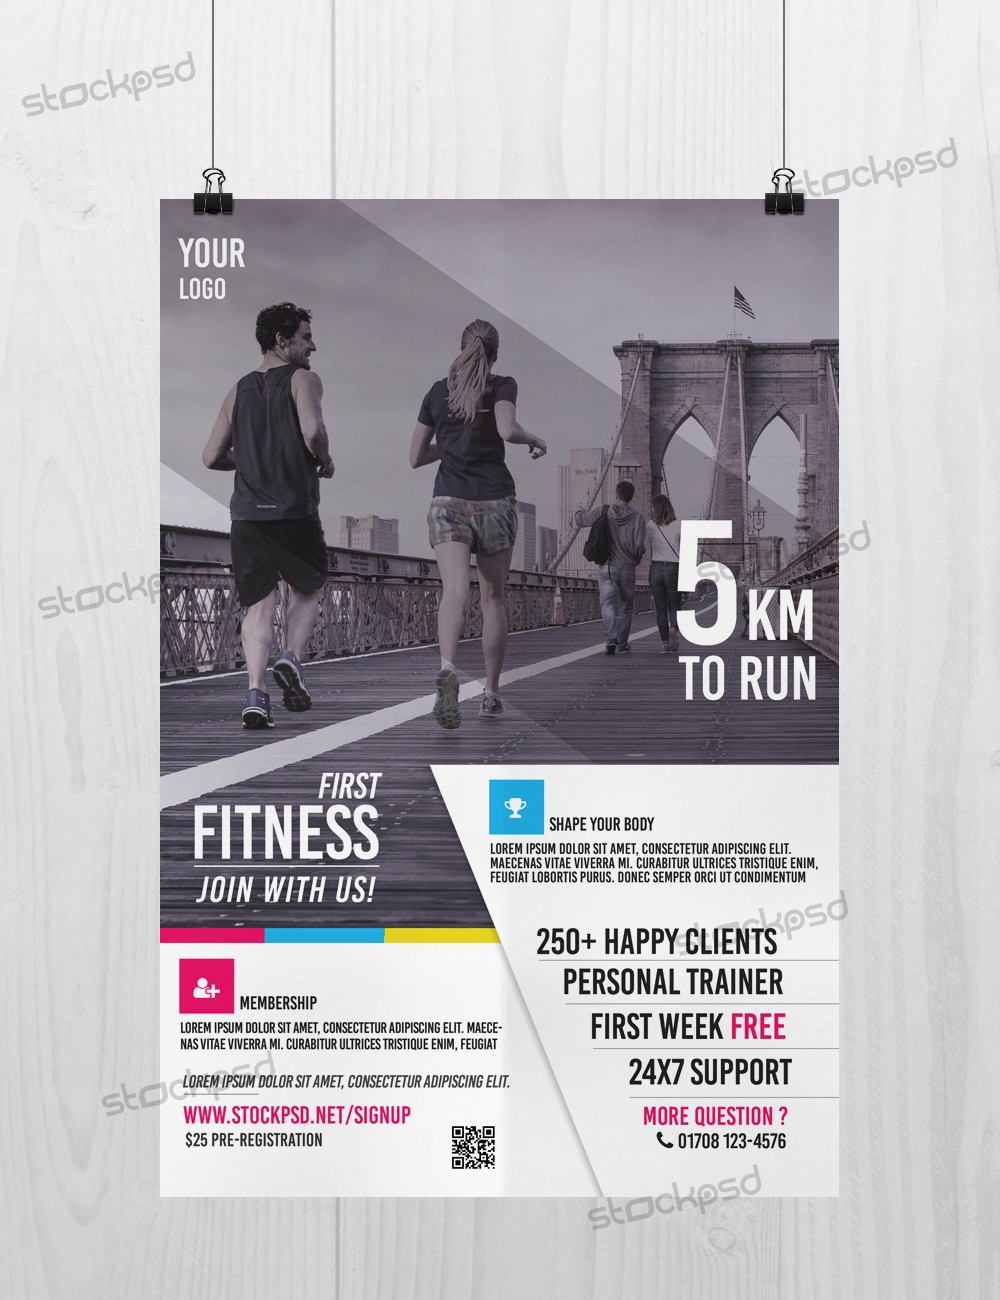 asa swimming lesson plan template - personal training flyer template gallery wedding theme